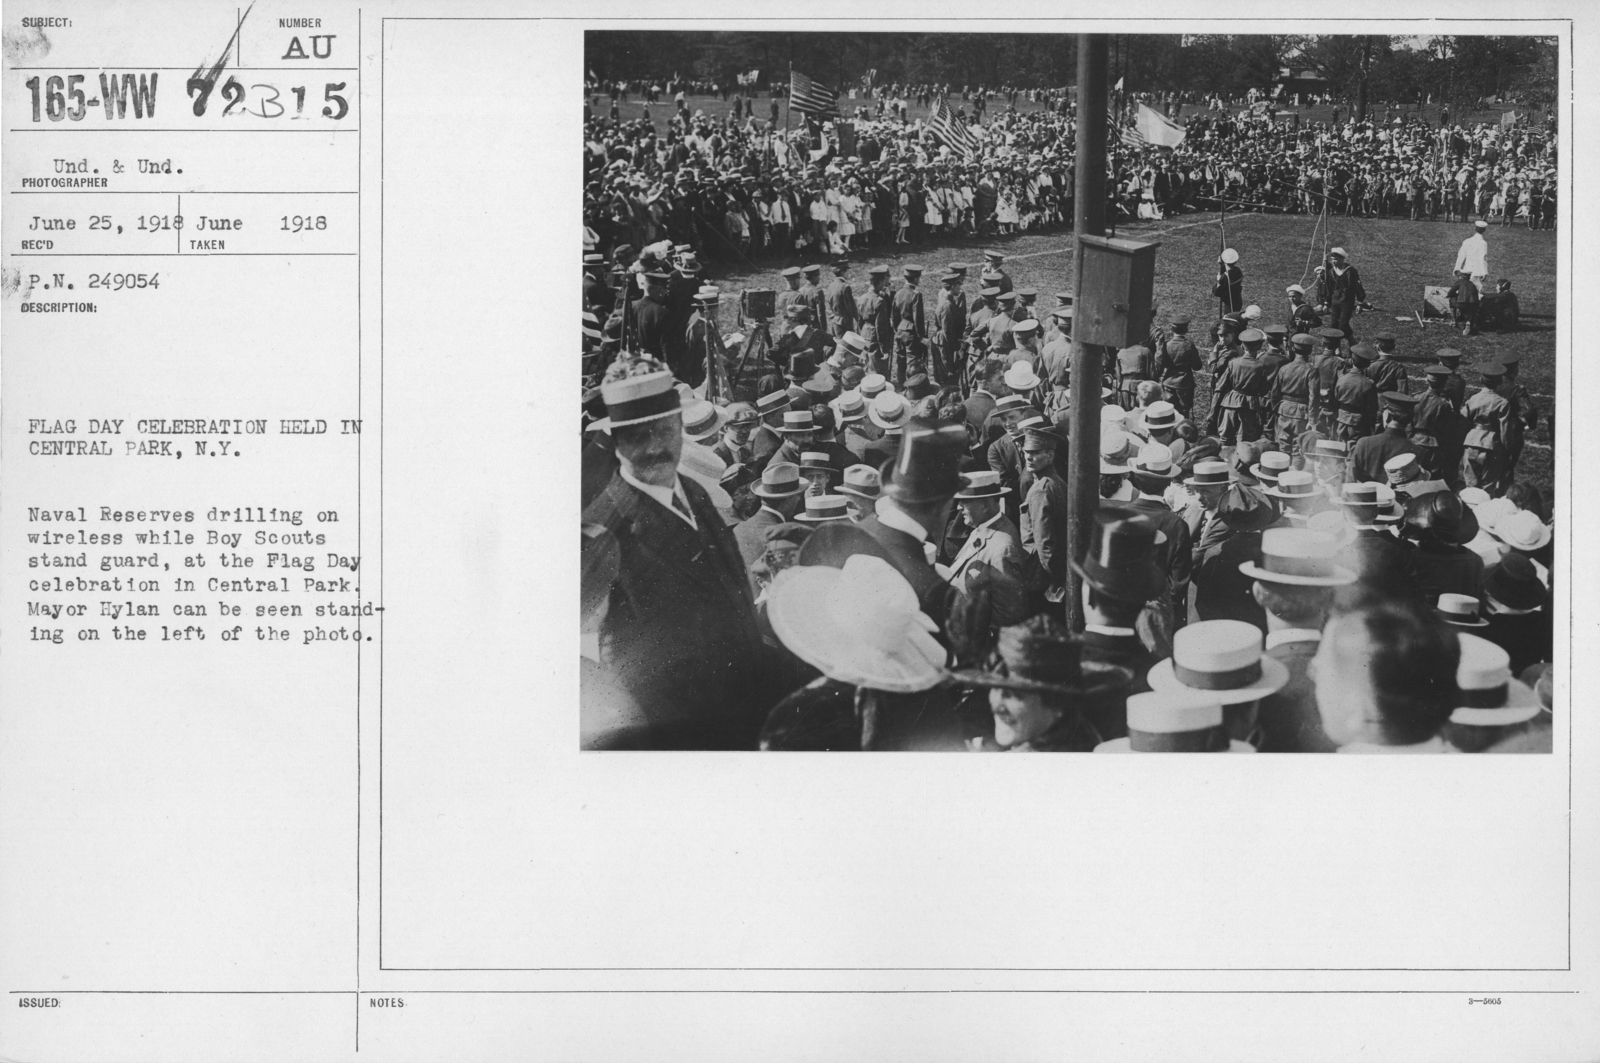 Ceremonies - Flag Day, 1918 - Flag Day Celectration held in Central Park, N.Y. Naval Reserves drilling on wireless while Boy Scouts stand guard, at the Flag Day celebration in Central Park. Mayor Hylan can be seen standing on the left of the photo